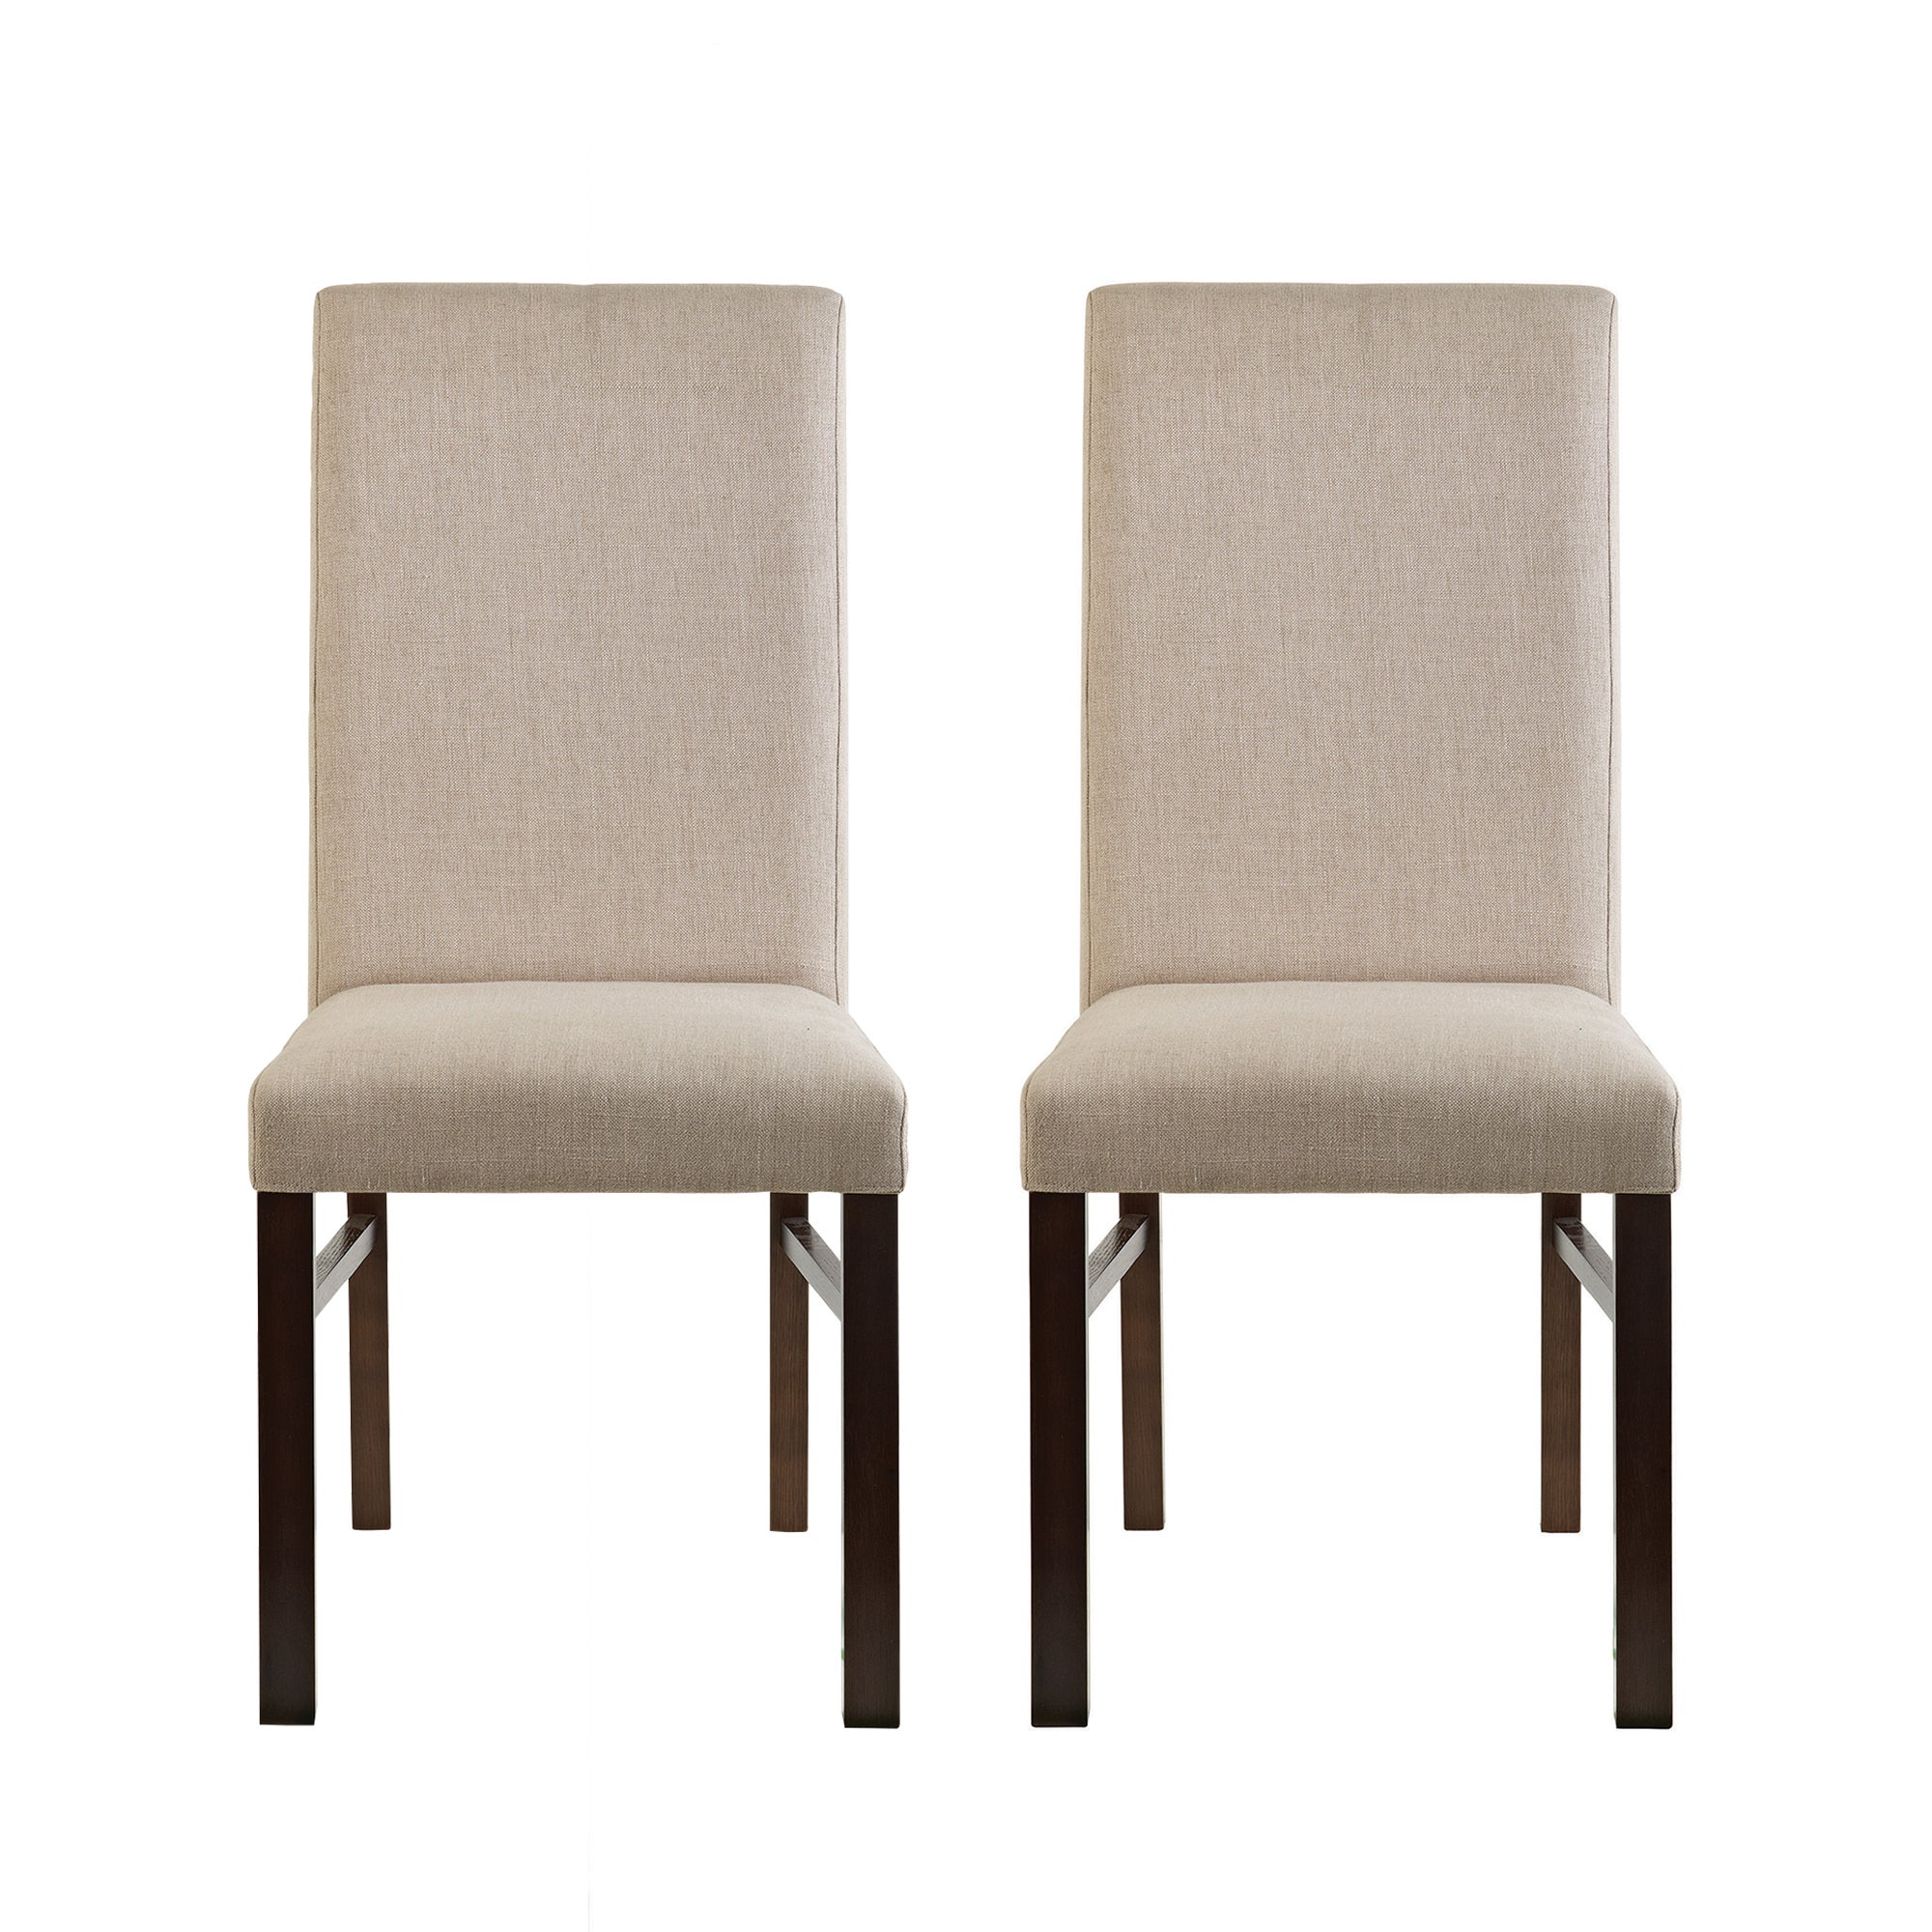 Knox Walnut Pair of Upholstered Dining Chairs